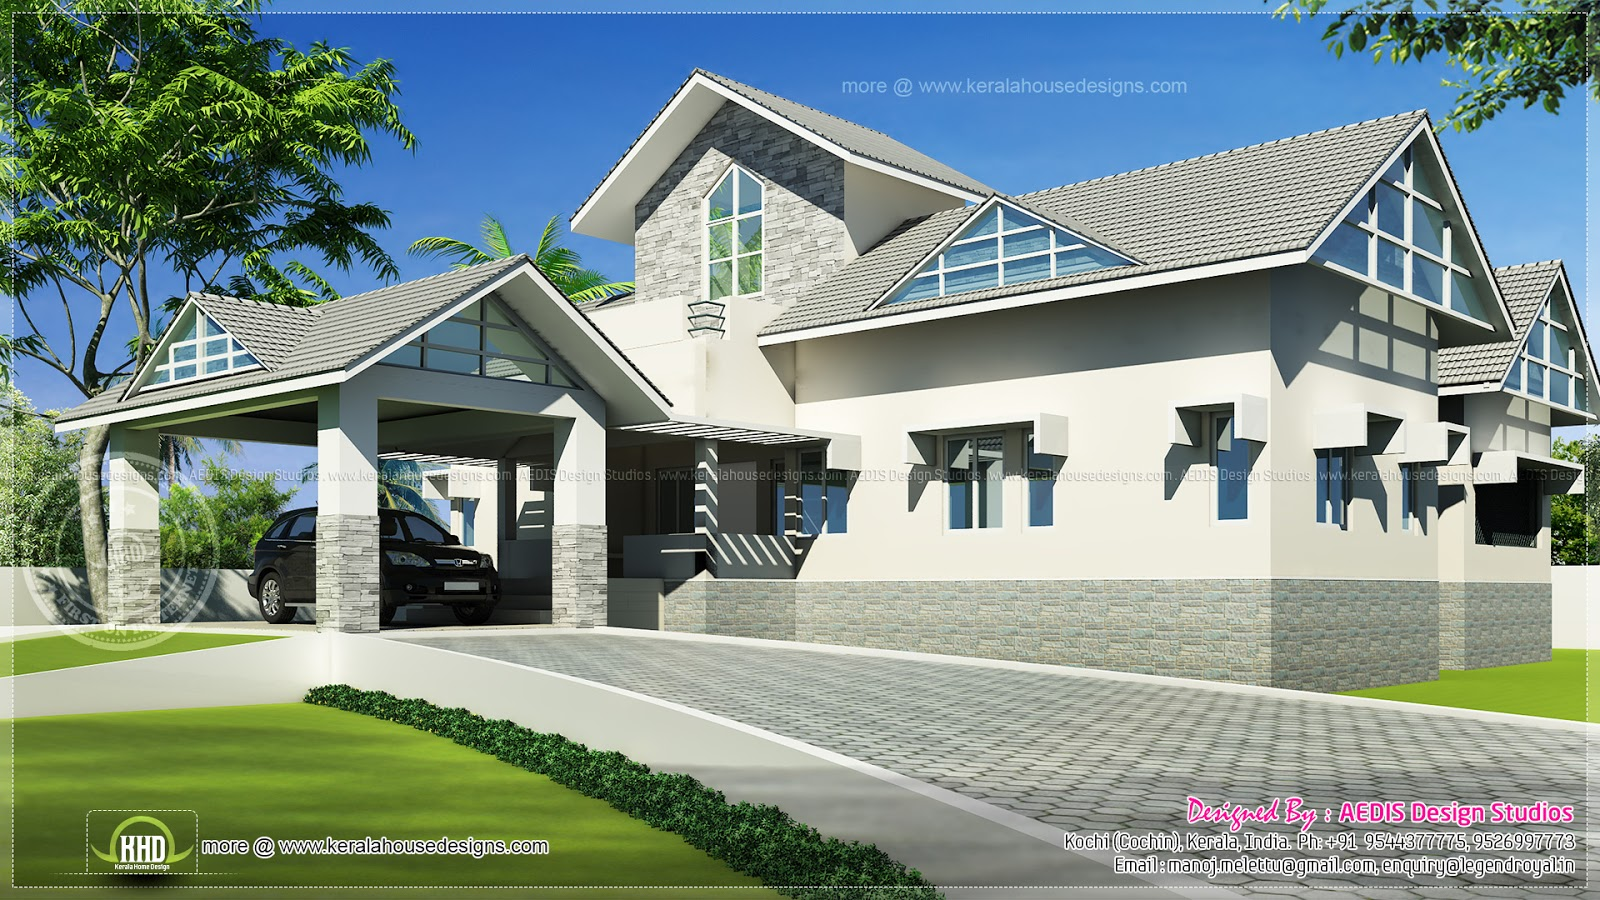 Western model 3 bedroom house design in kerala kerala for Western home plans